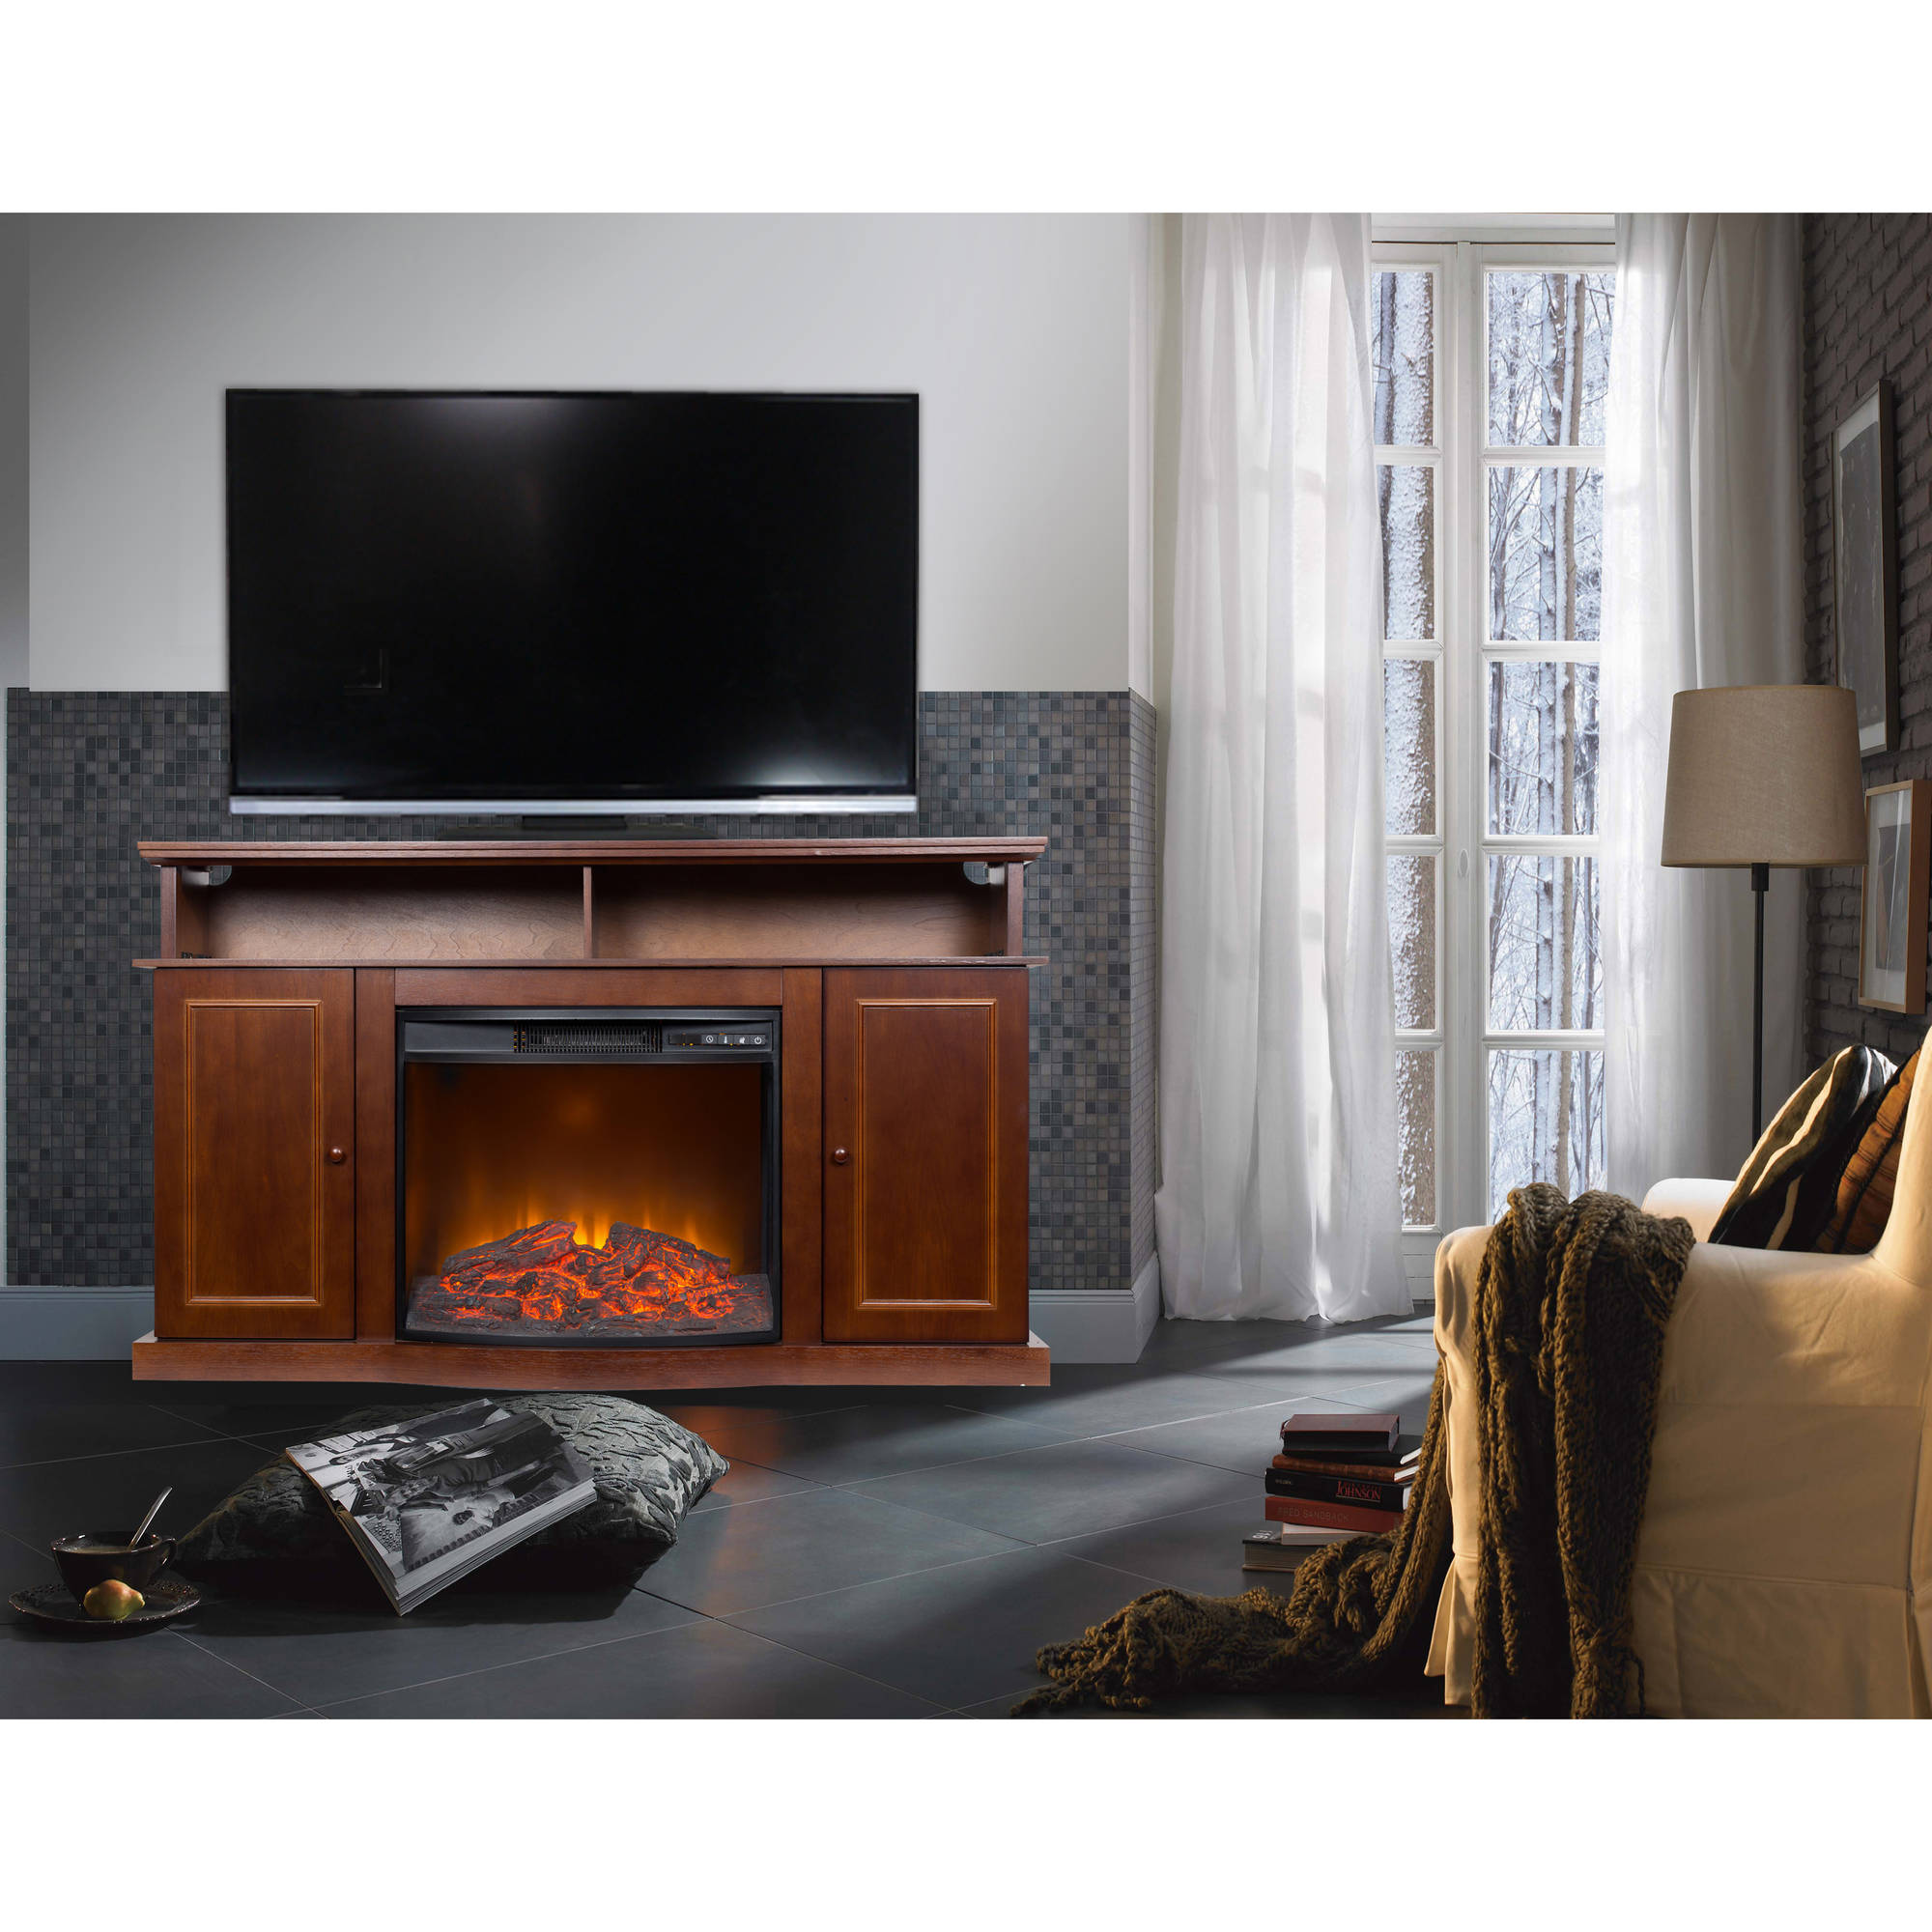 56 Inch TV Stand With Fireplace Media Console Electric Entertainment Center SALE  eBay